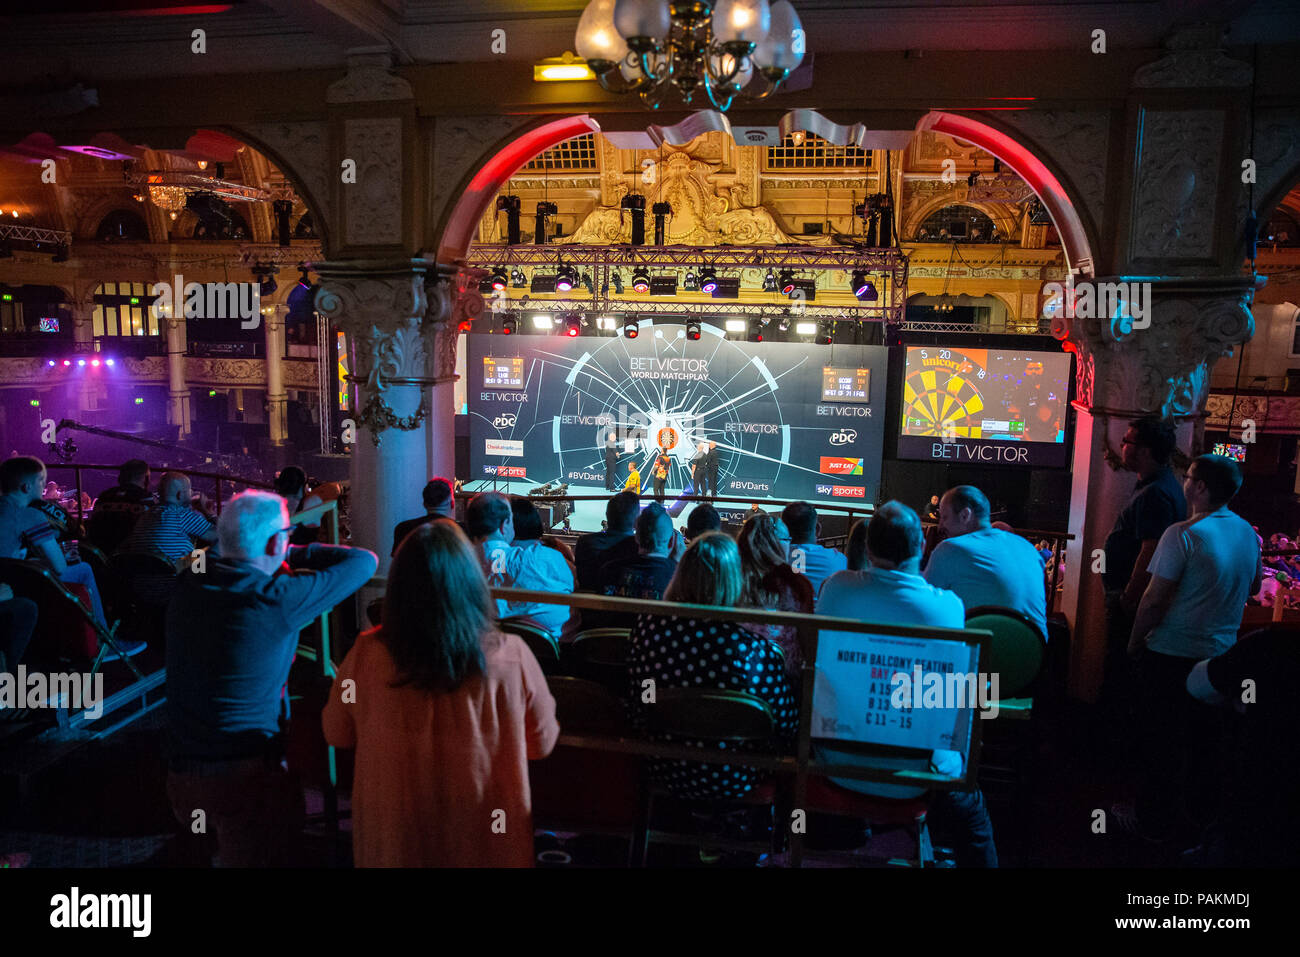 Winter Gardens Blackpool Uk 24th July 2018 Betvictor